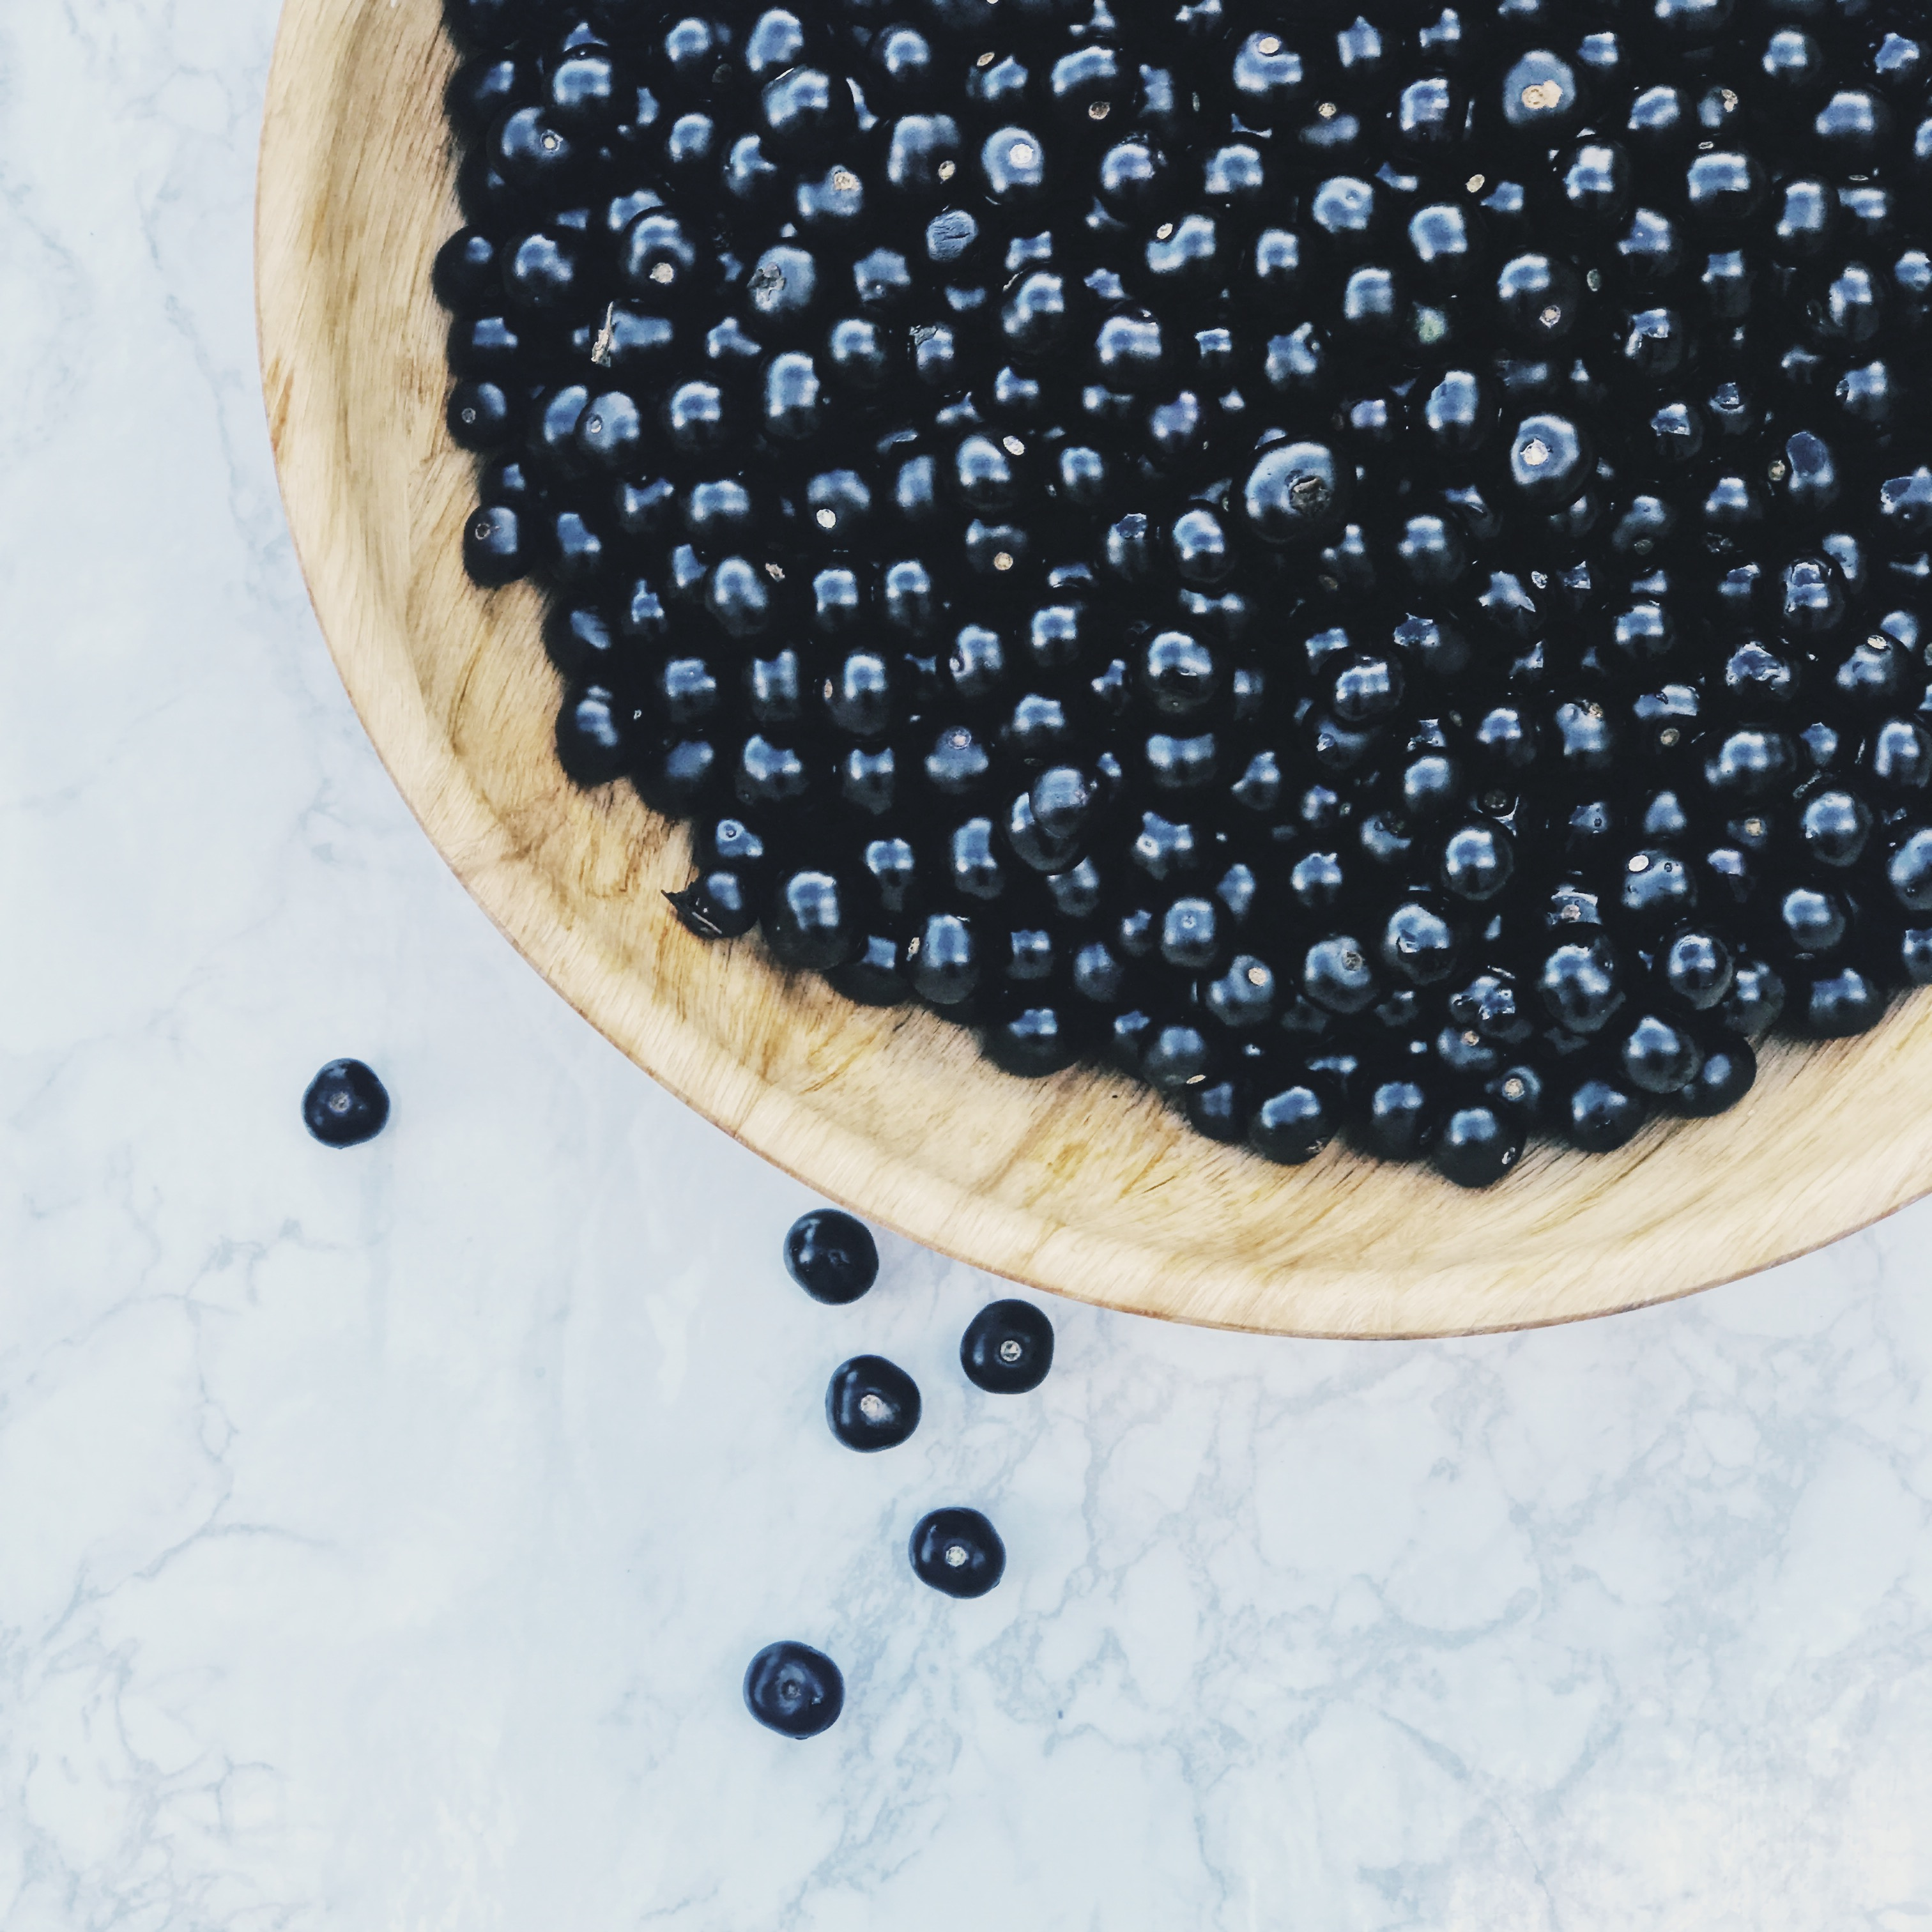 huckleberries on a wooden board